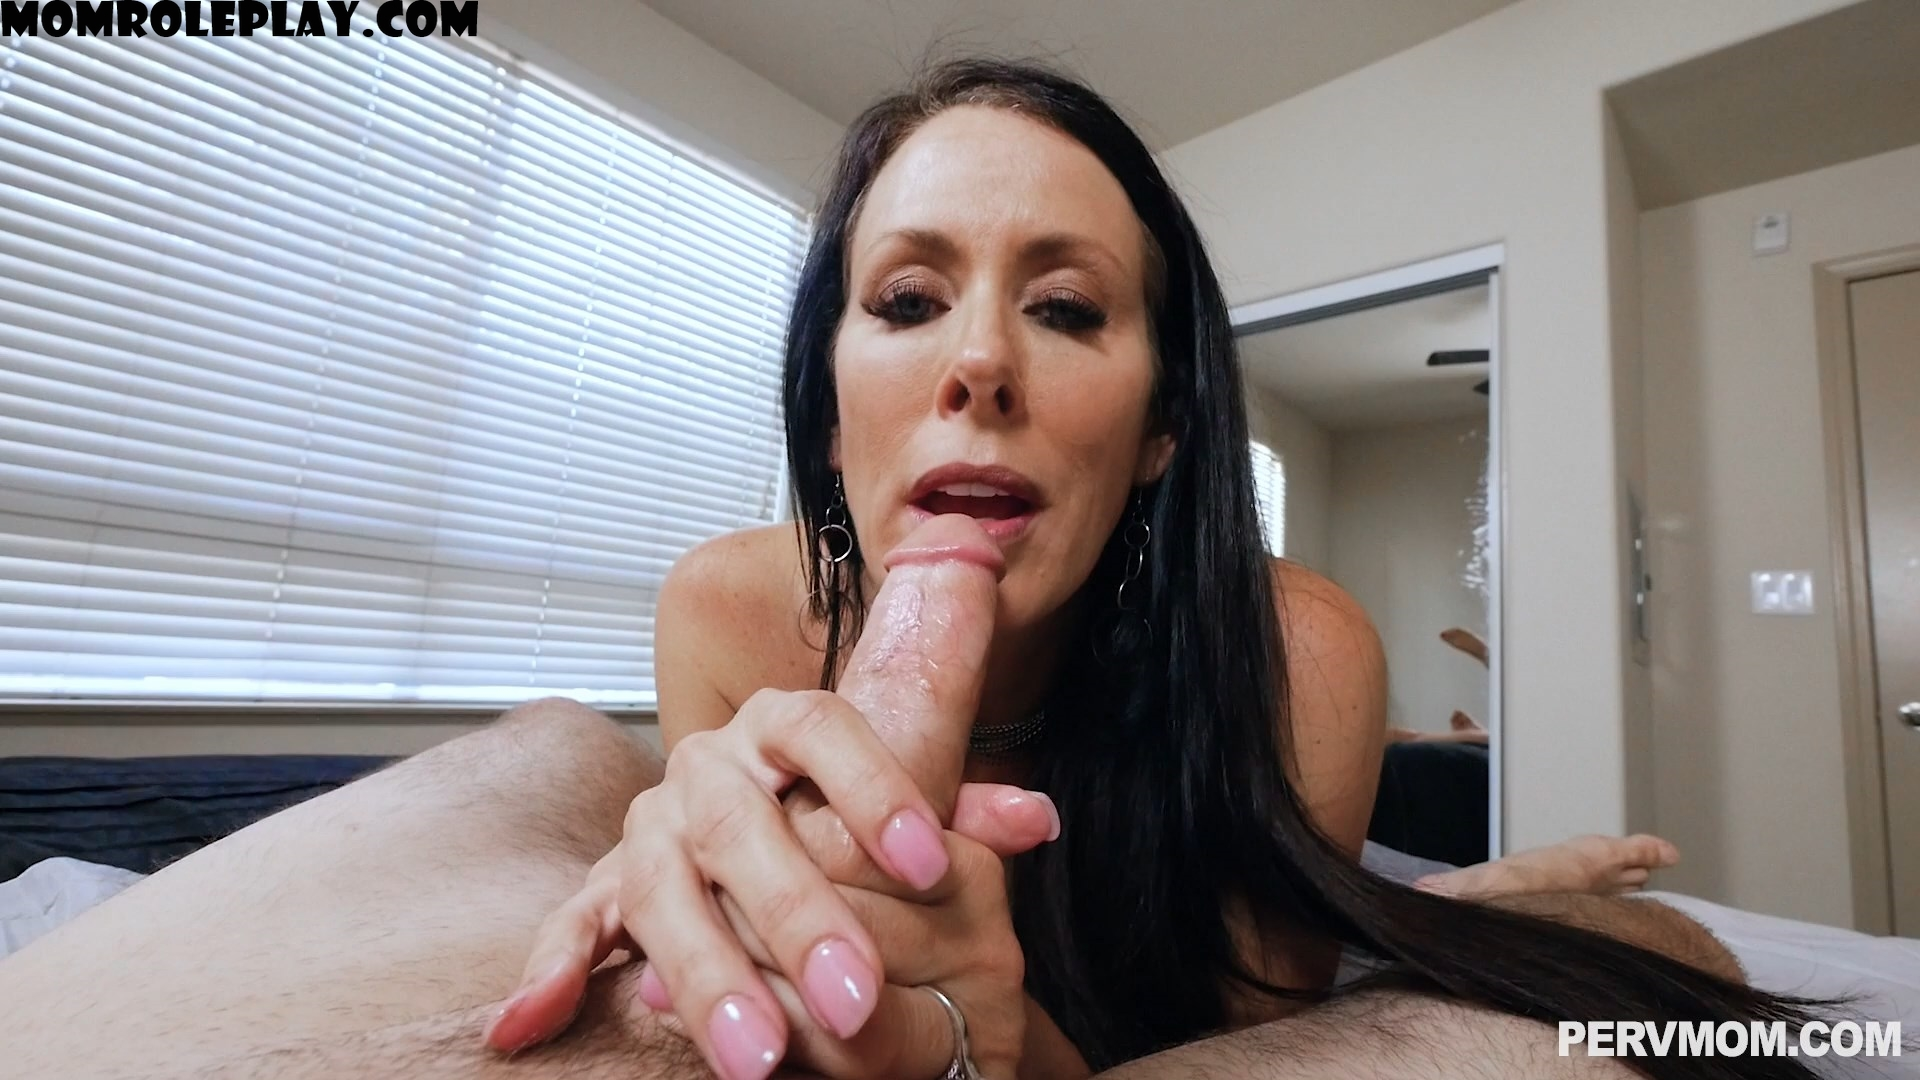 Perv Mom - Hip On The Dick Tip - Reagan Foxx